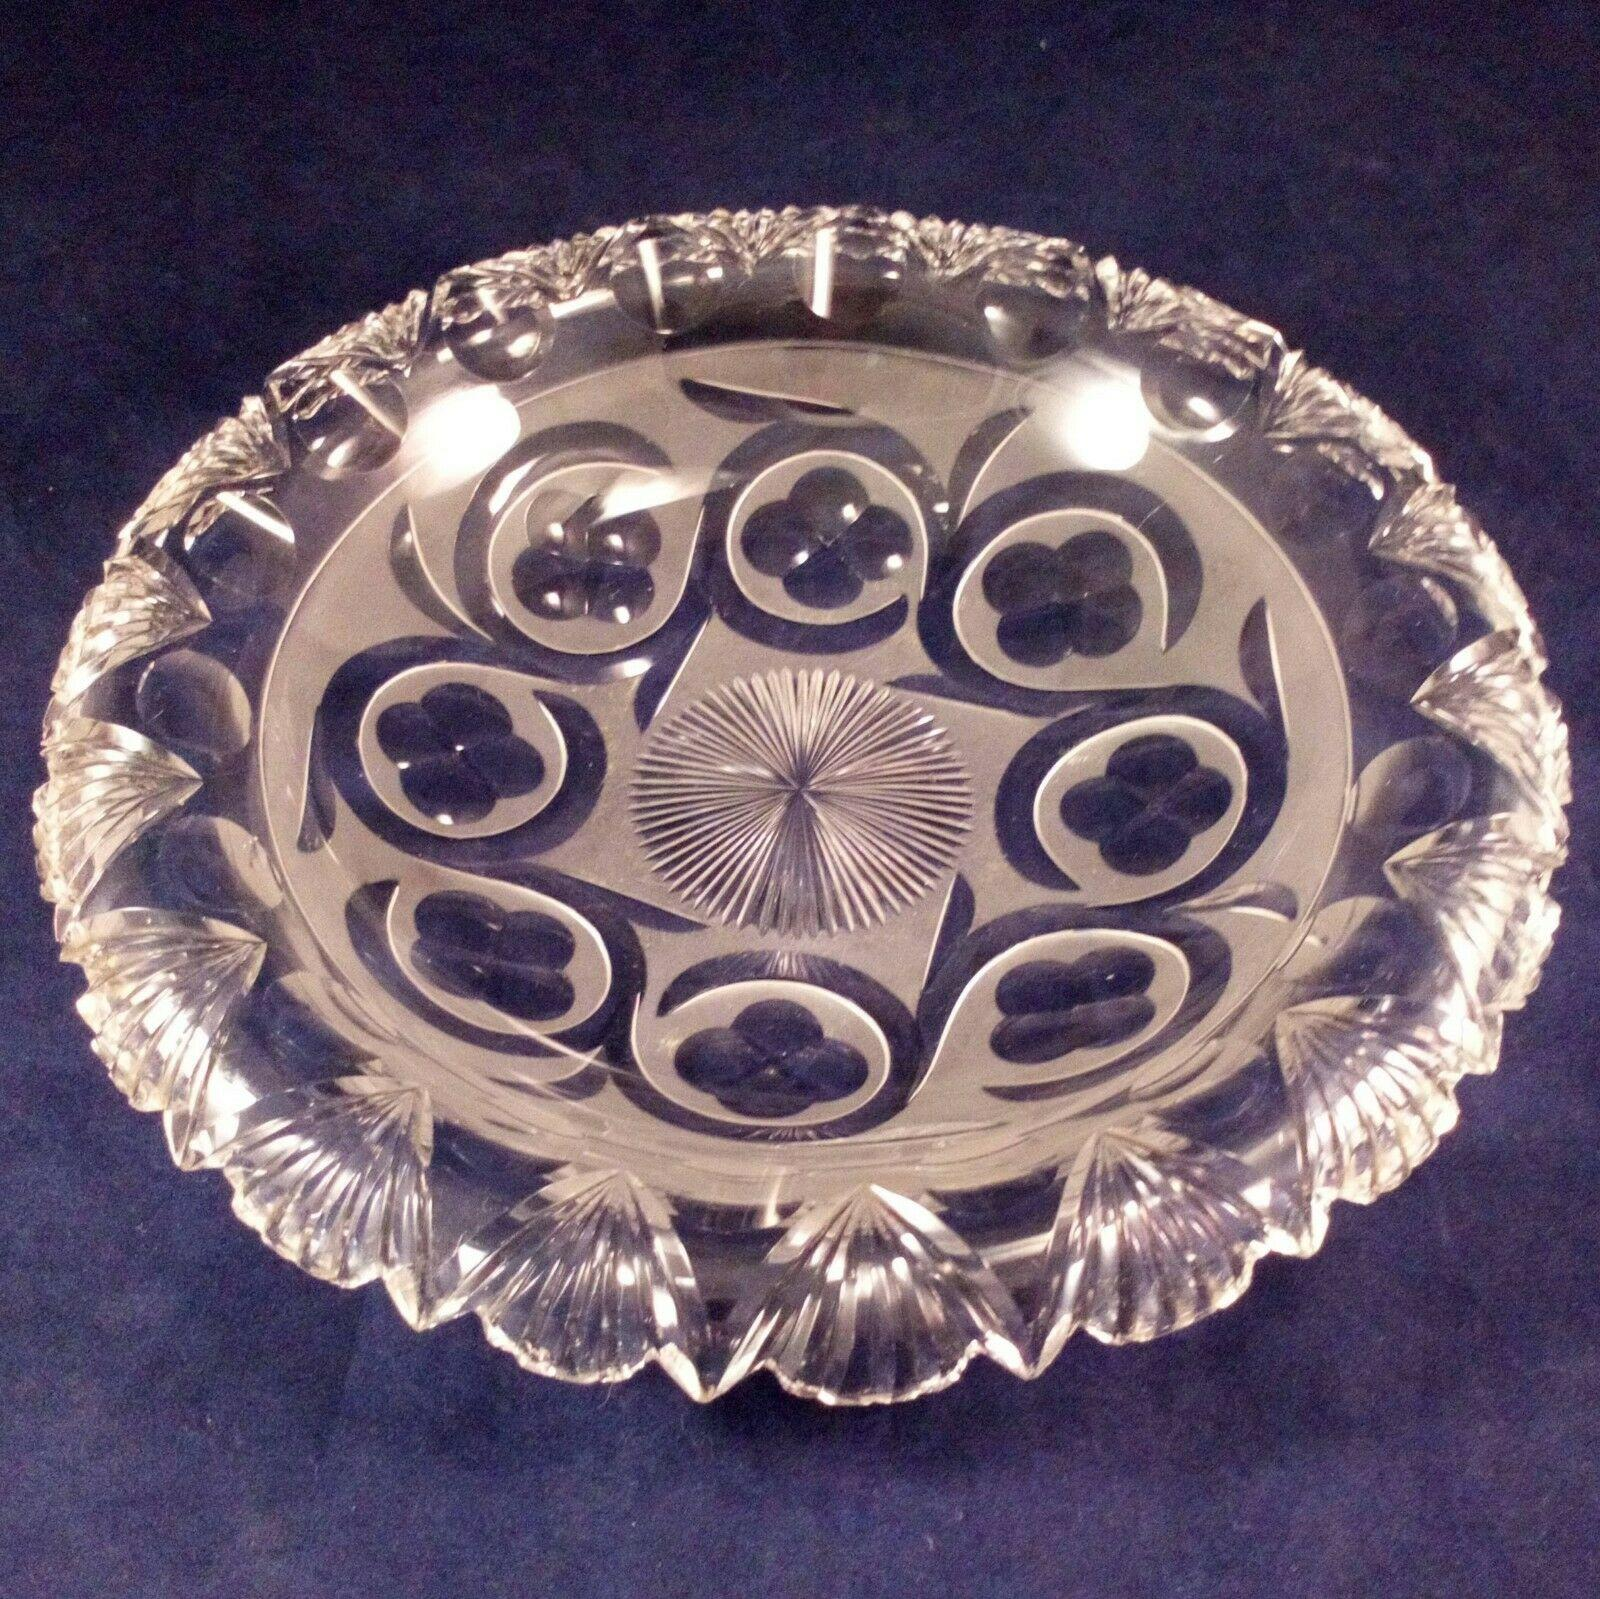 Cut Lead Glass Everted Rim Dish Fan Cut Rim Frosted Etched Detail Victorian c 1860